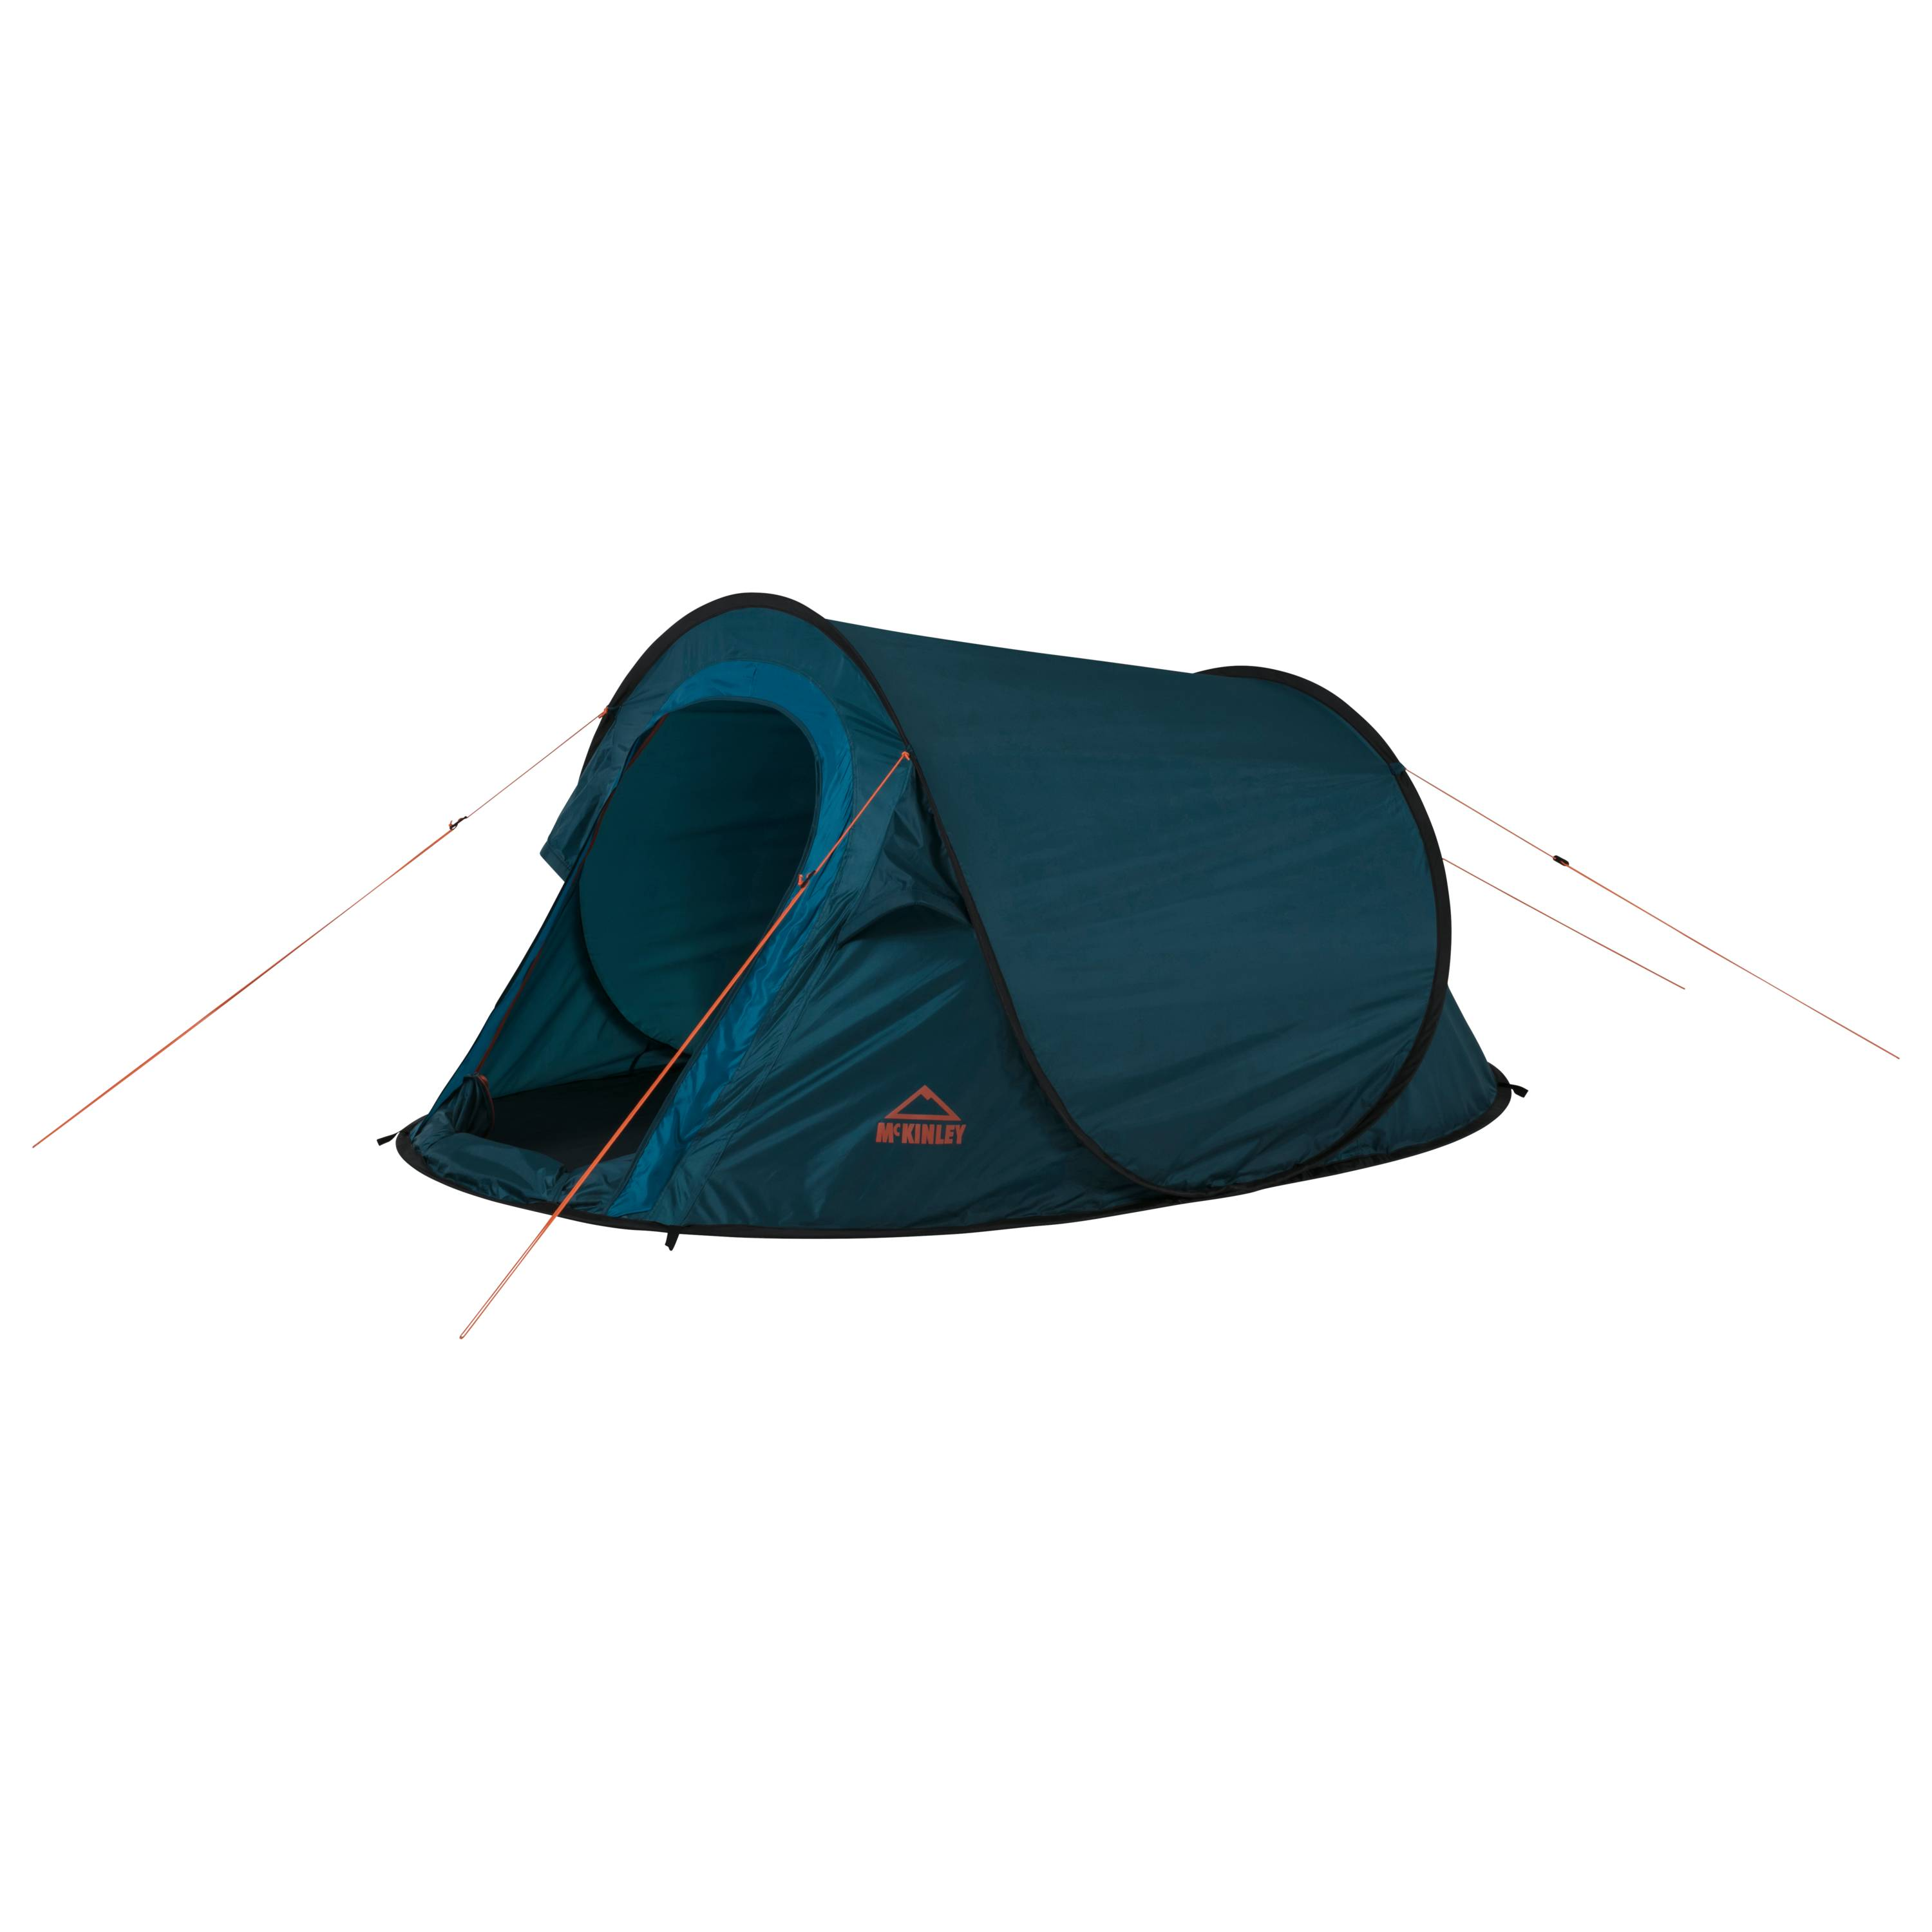 McKinley IMOLA 220 POP UP TENT, šator, plava